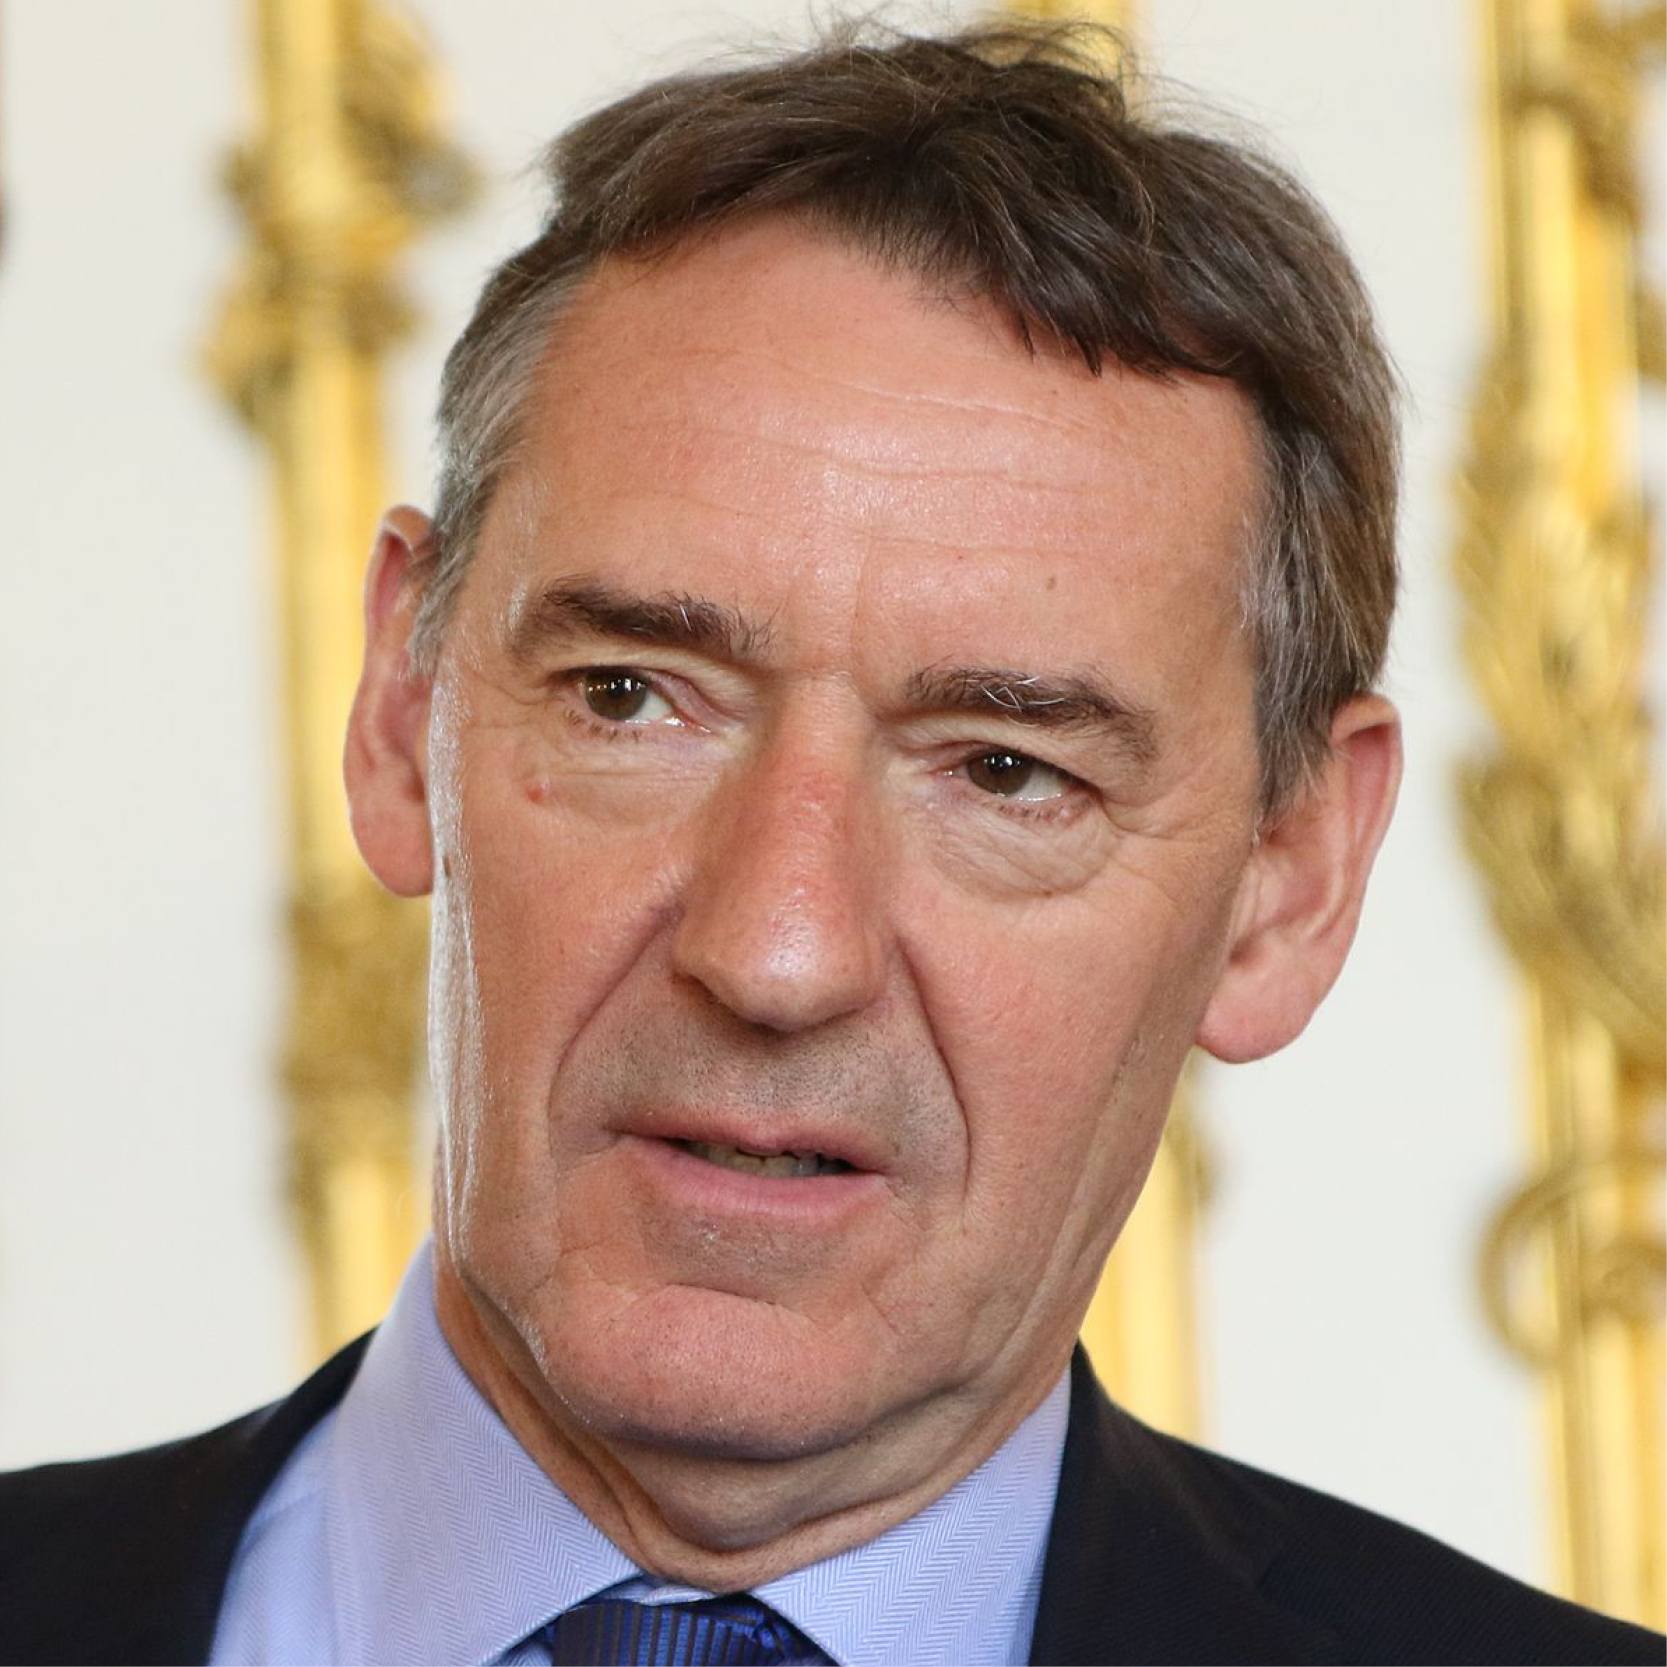 Lord Jim O'neill.jpg